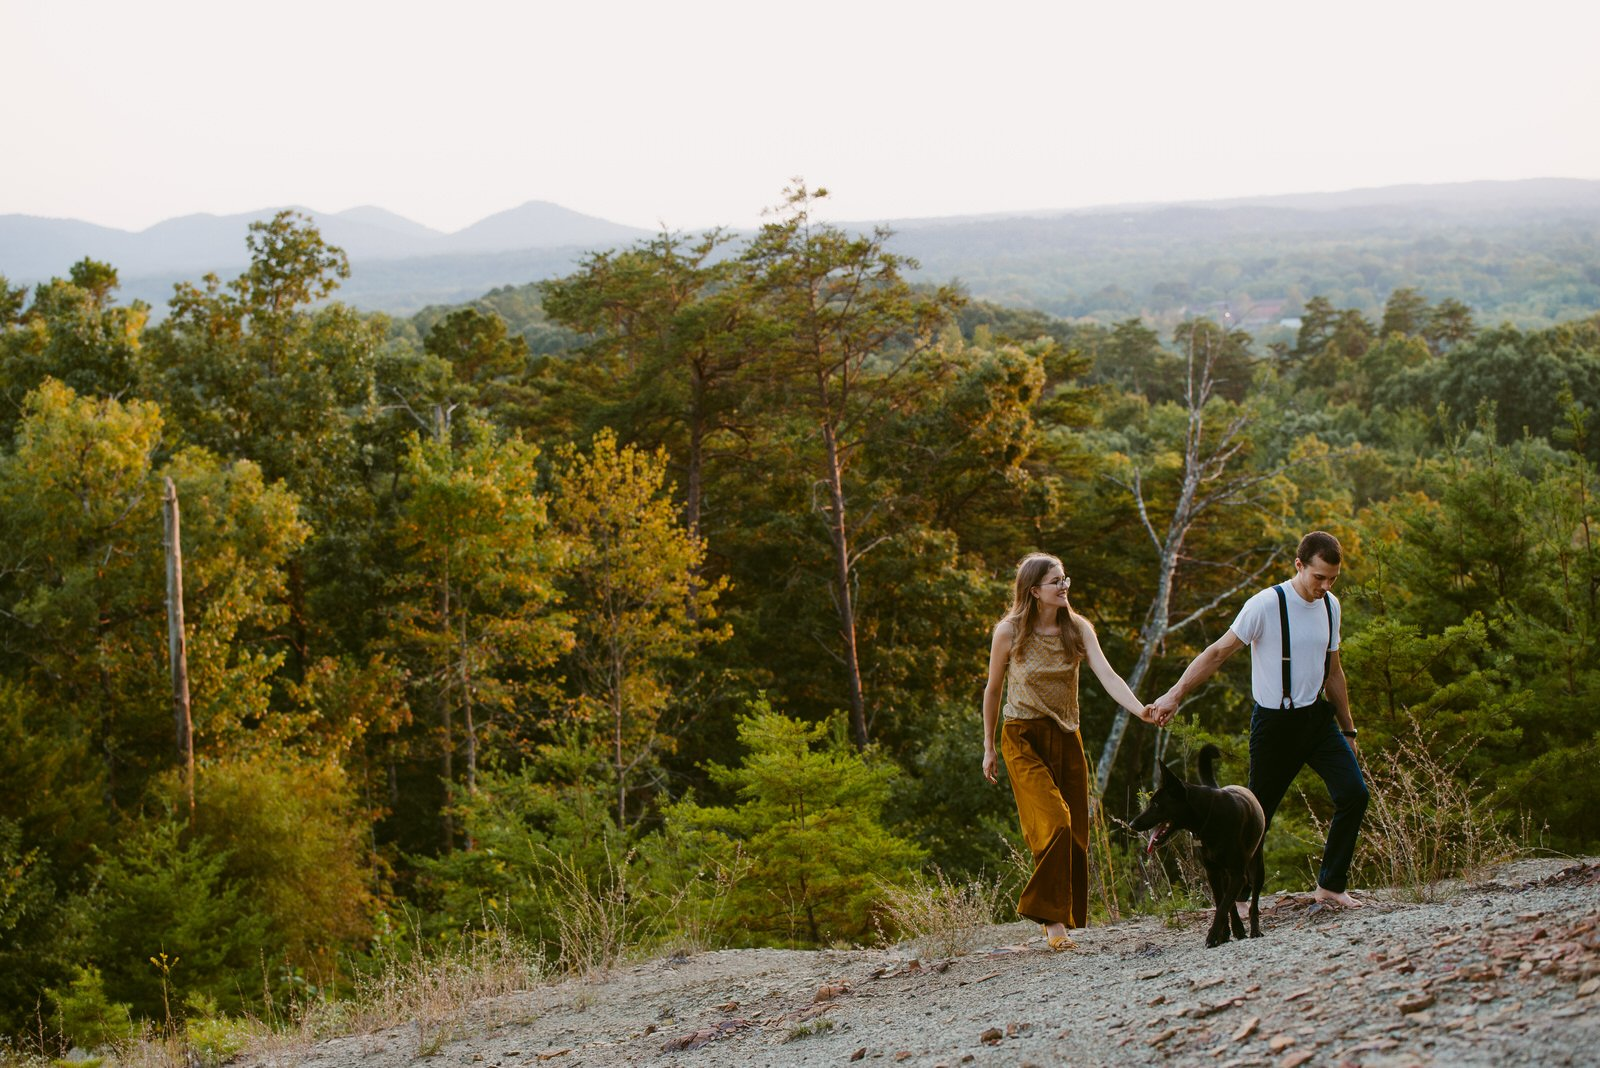 man and woman walking on a rocky hillside looking out across Red River Gorge landscape black dog walks ahead